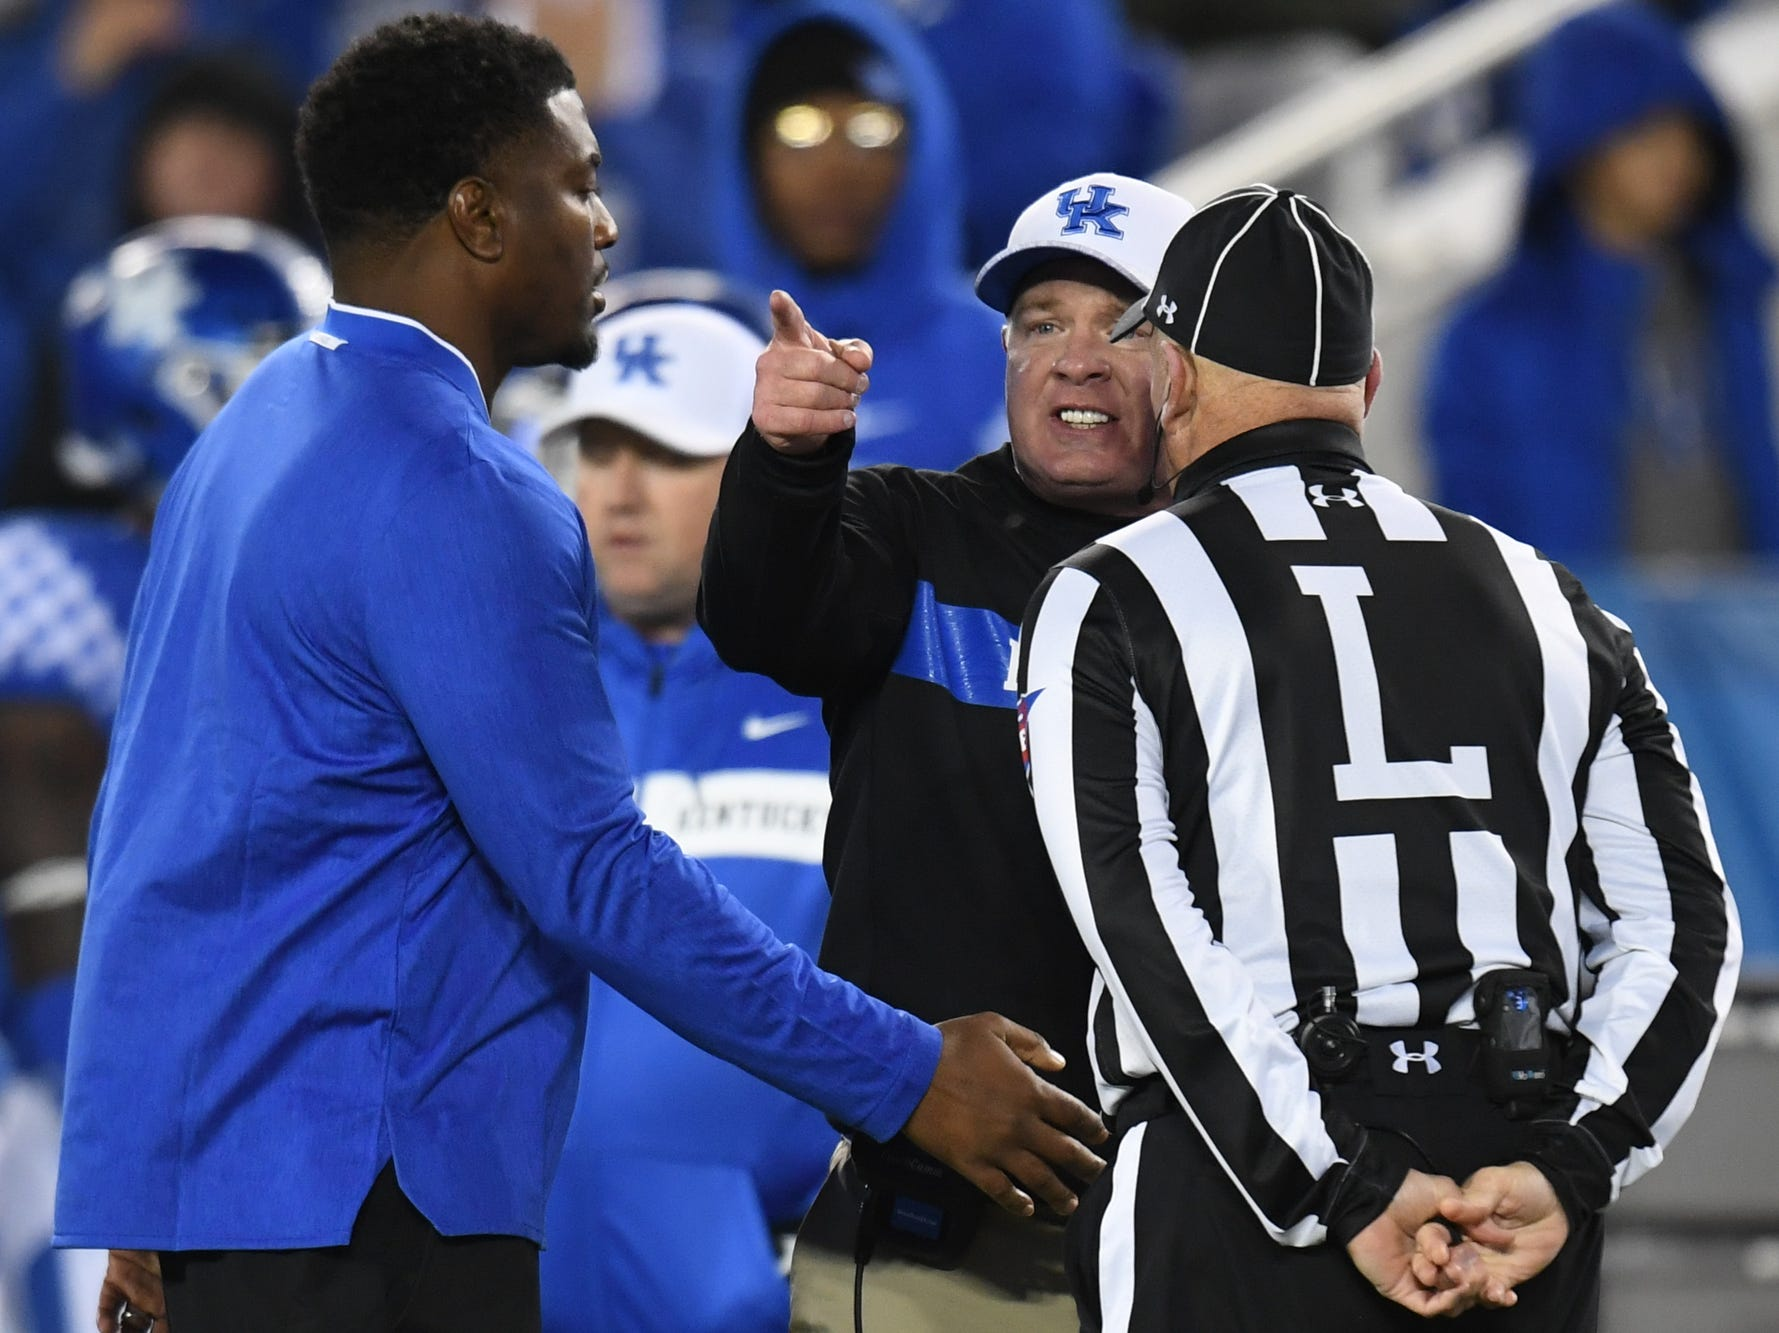 UK head coach Mark Stoops talks with an official during the University of Kentucky football game against Vanderbilt at Kroger Field in Lexington, Kentucky on Saturday, October 20, 2018.